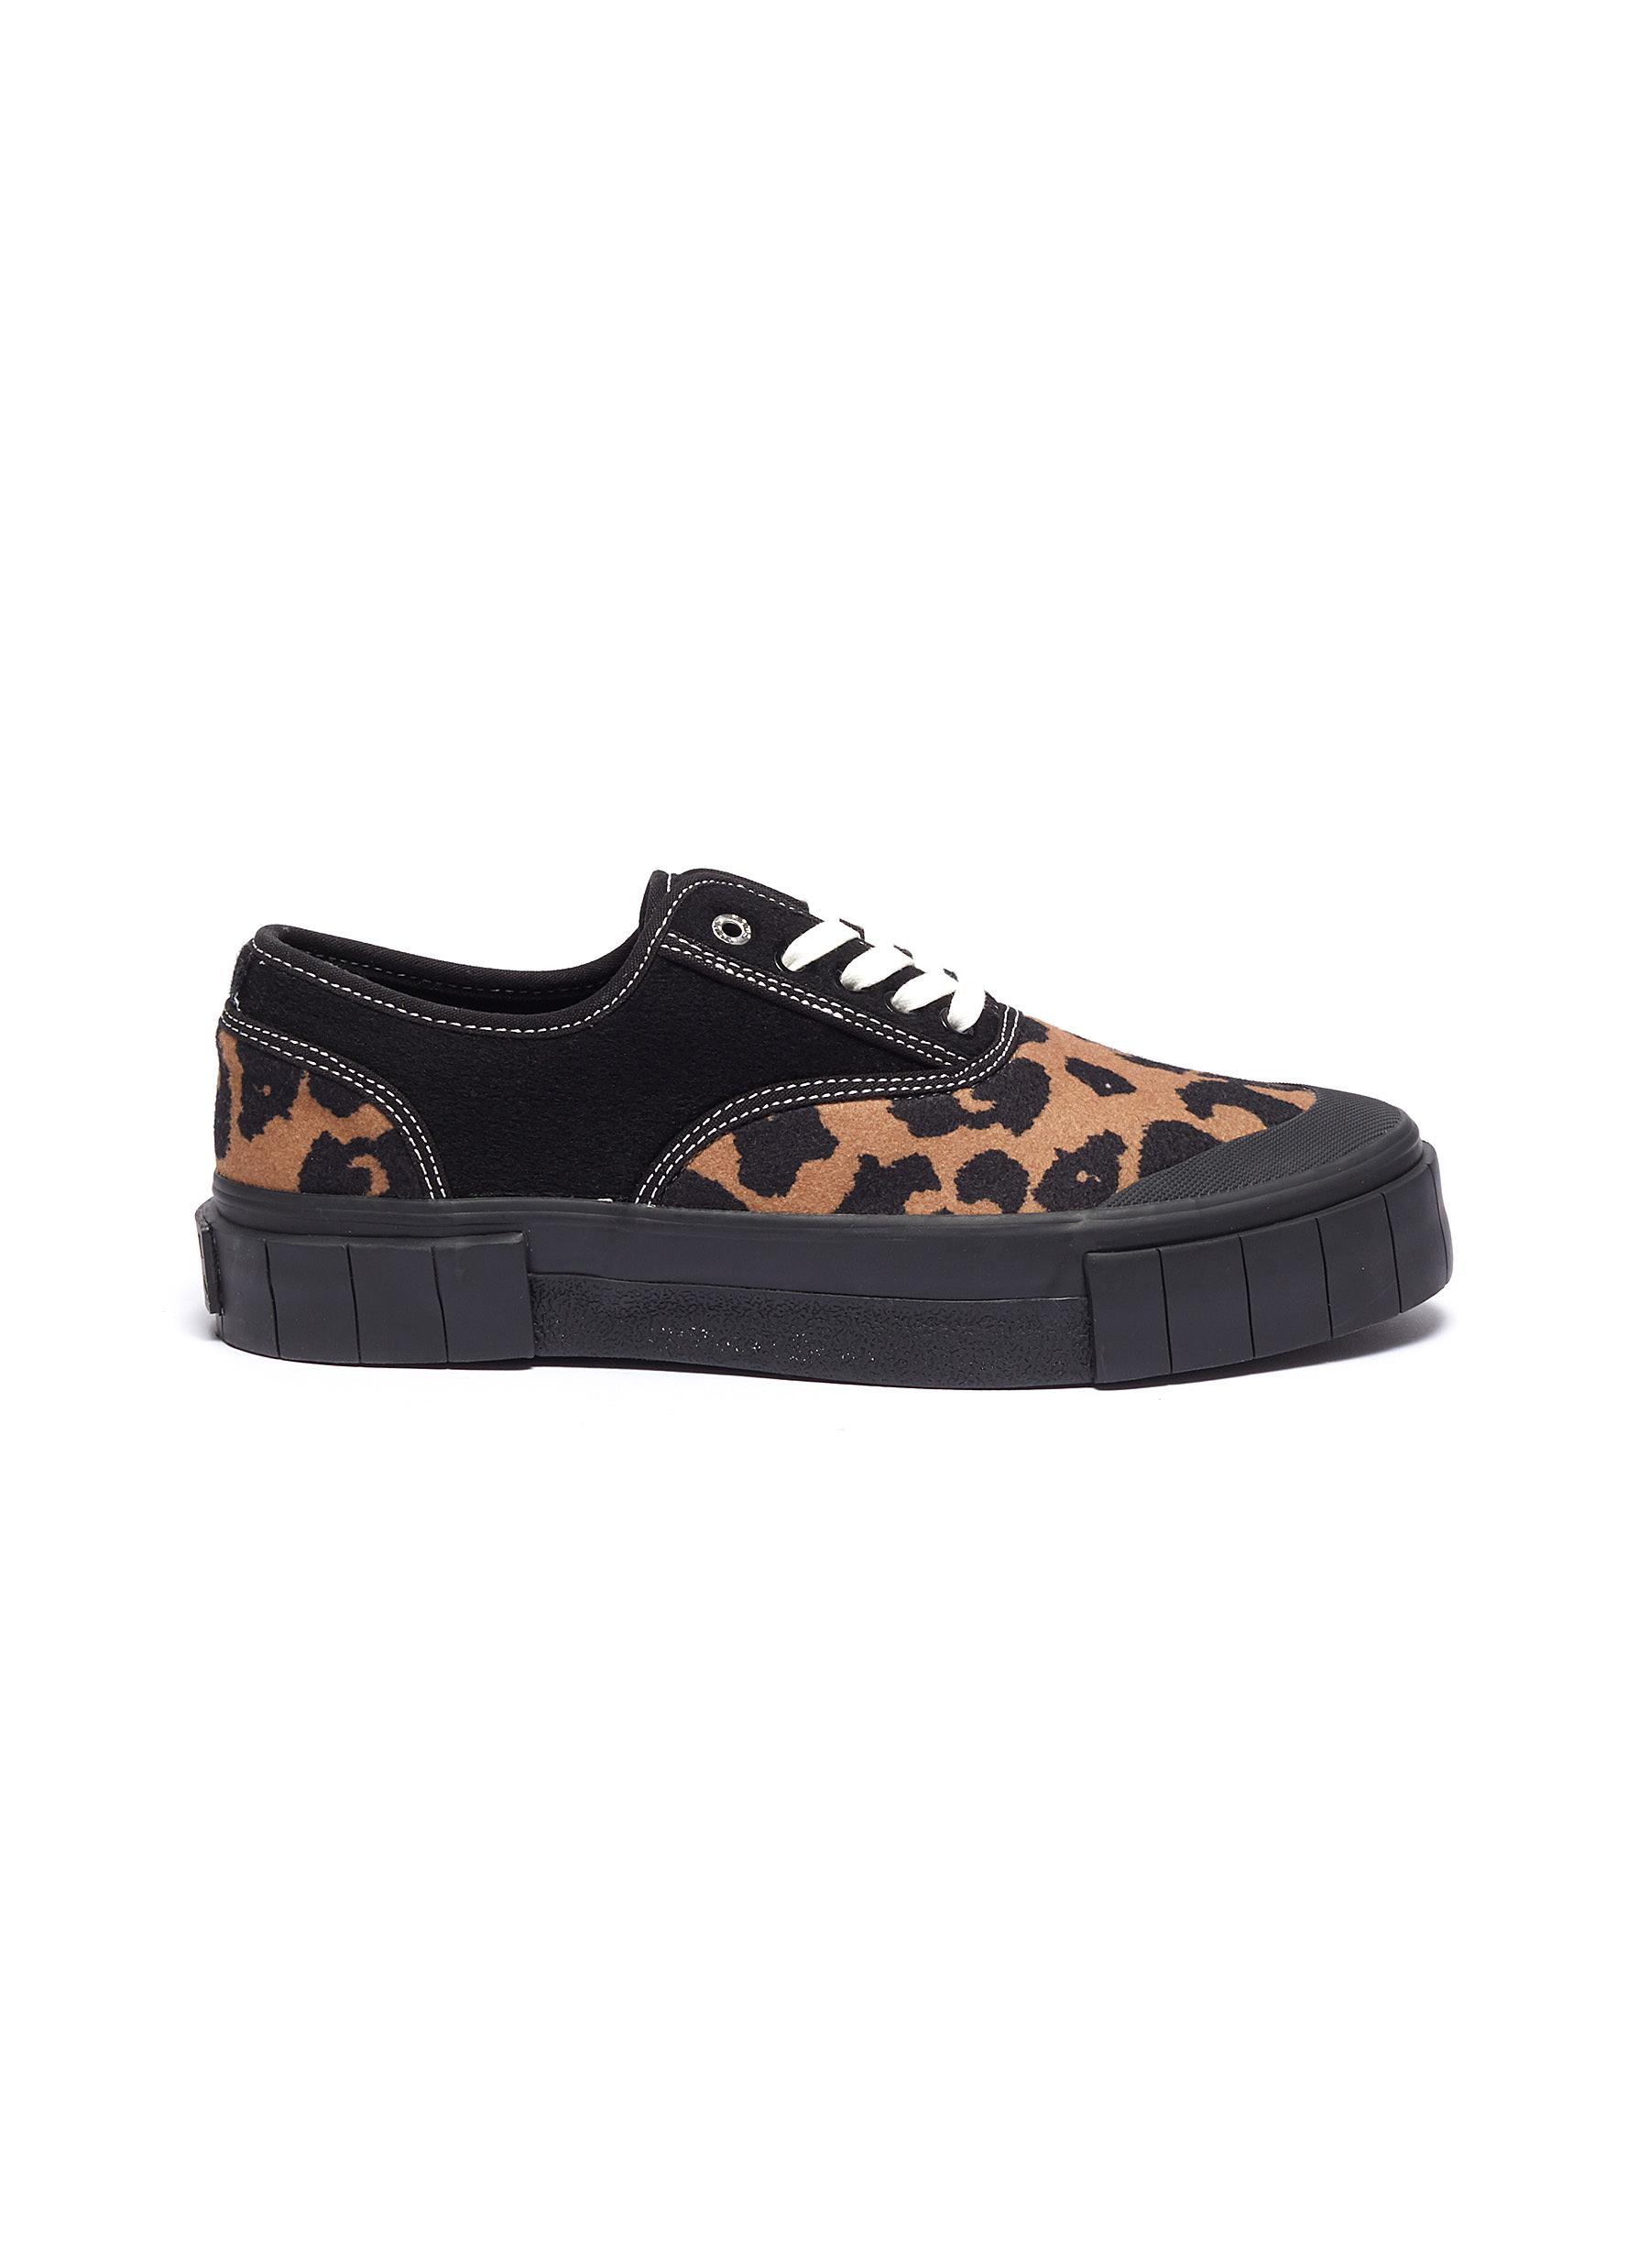 Softball 2 cotton panel leopard print wool sneakers by Good News